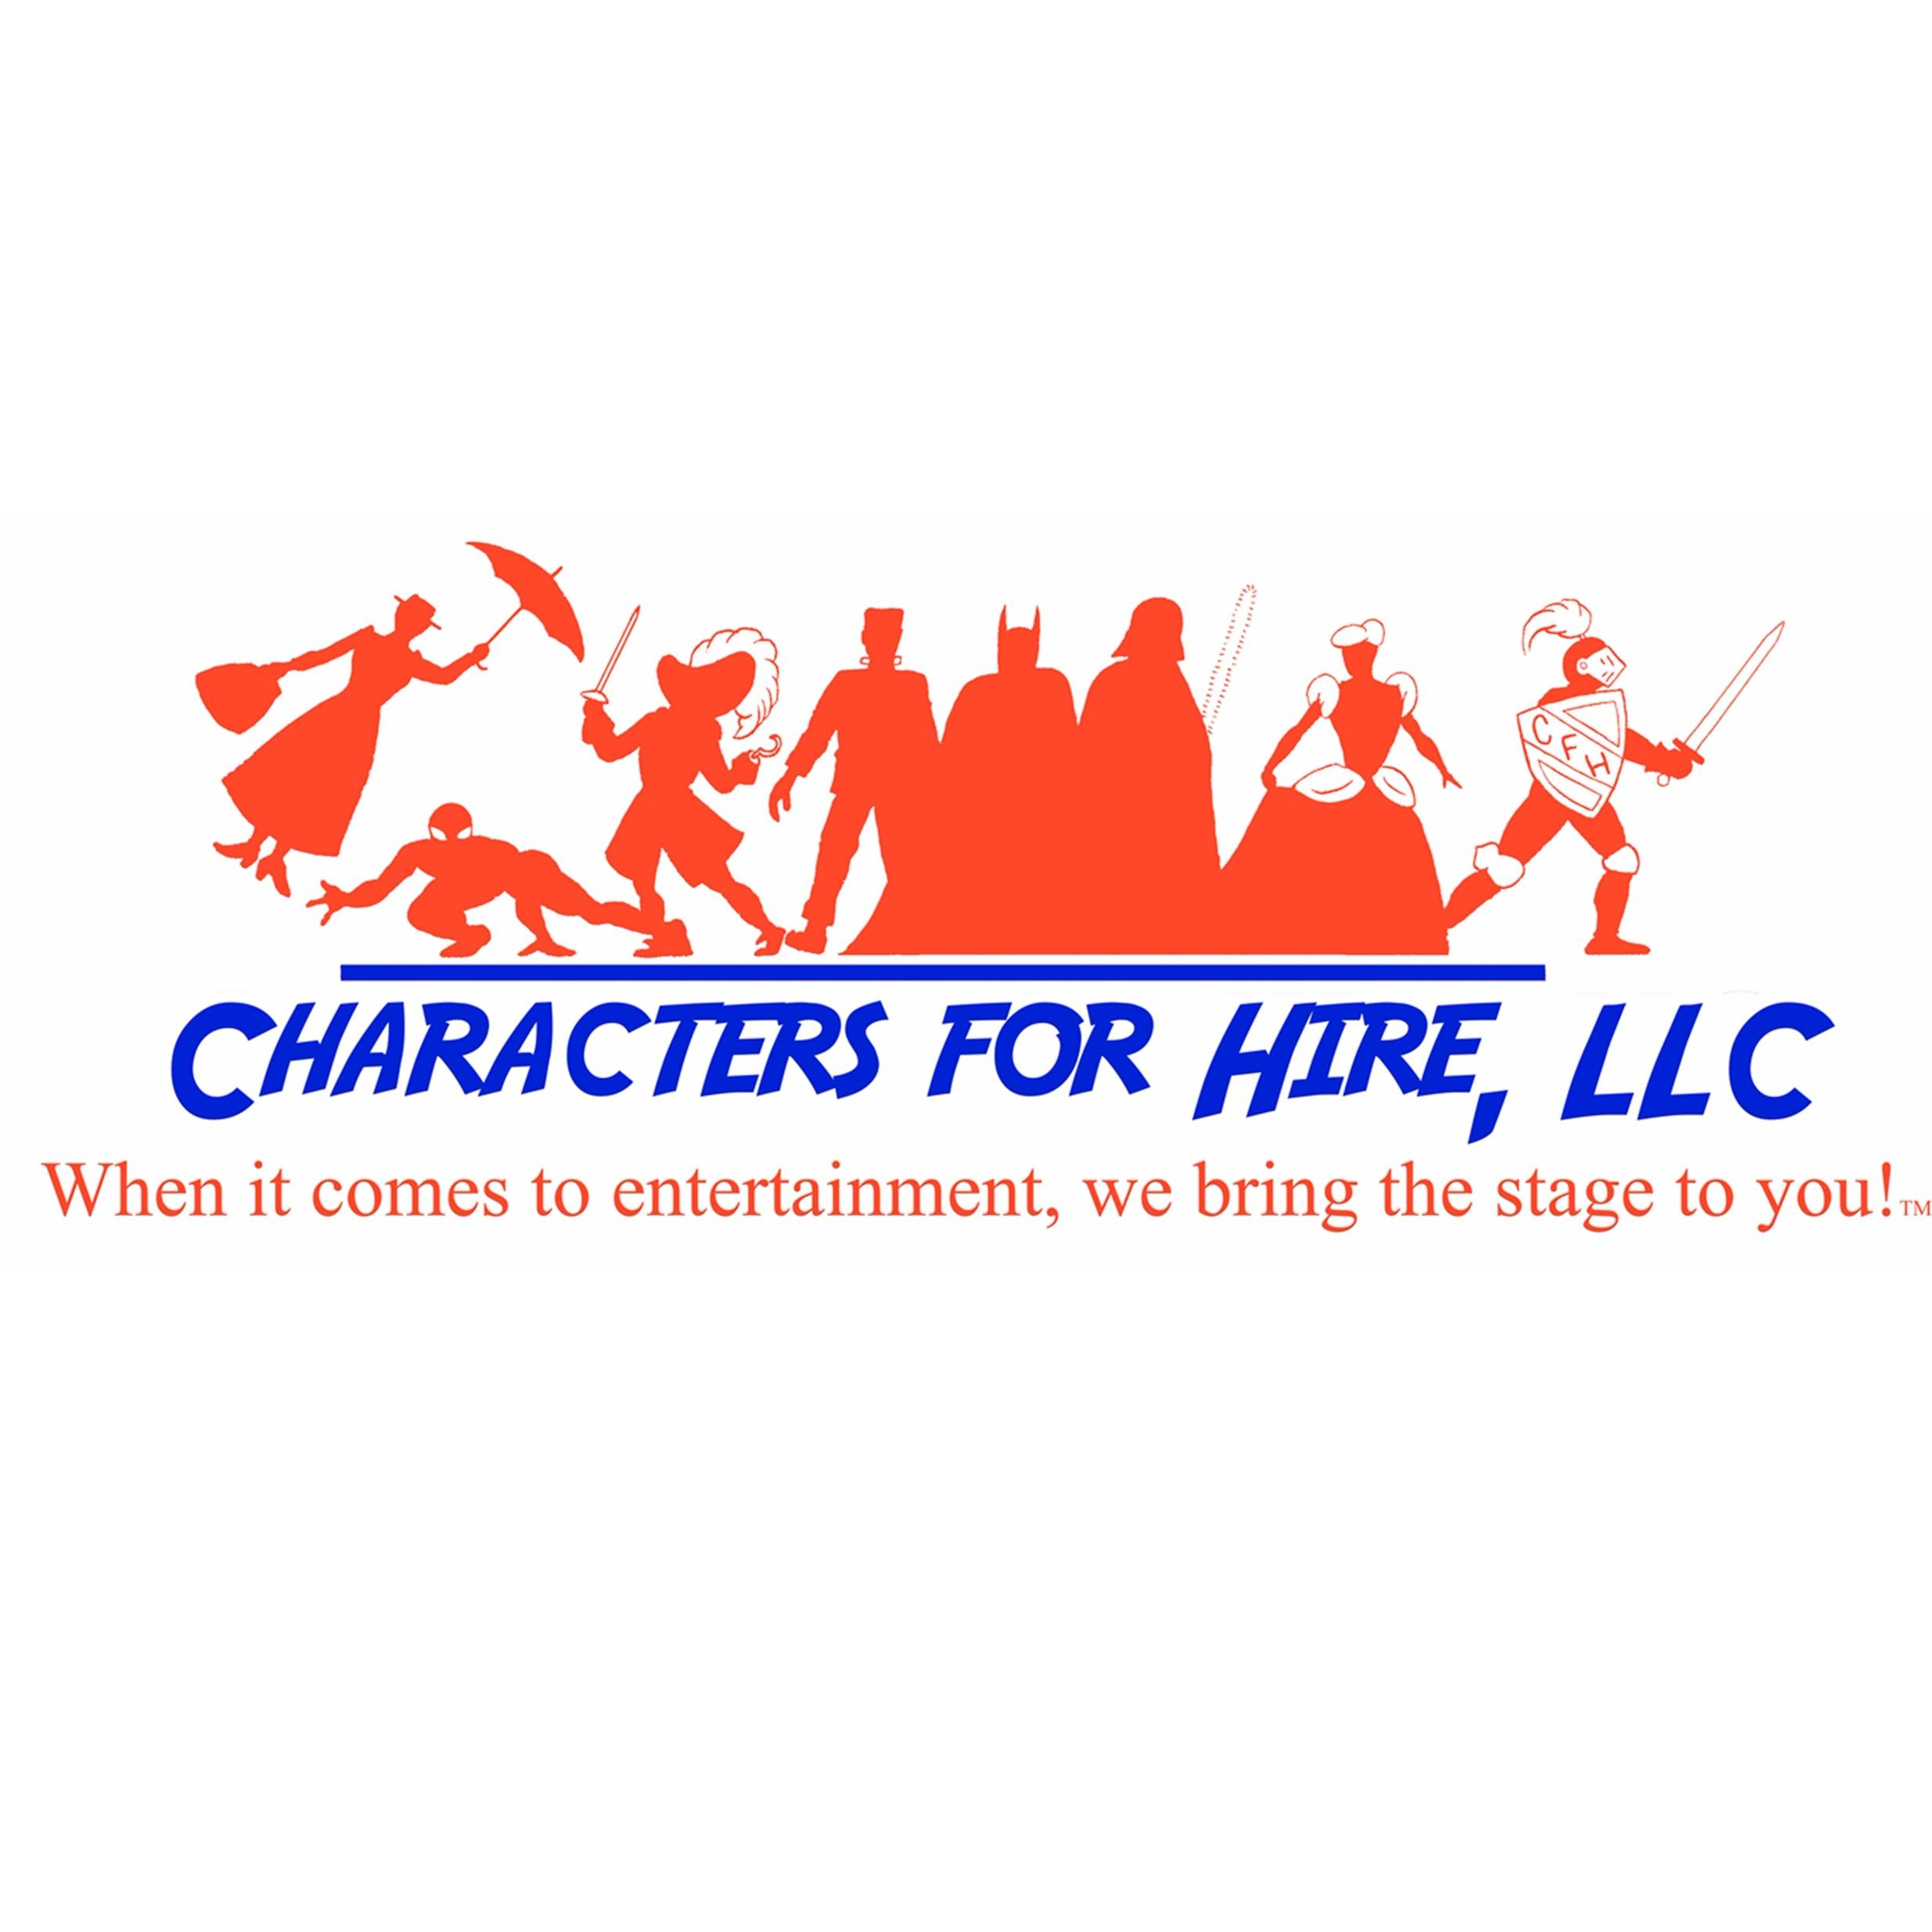 Characters for hire llc in new york ny 10018 for 1440 broadway 19th floor new york ny 10018